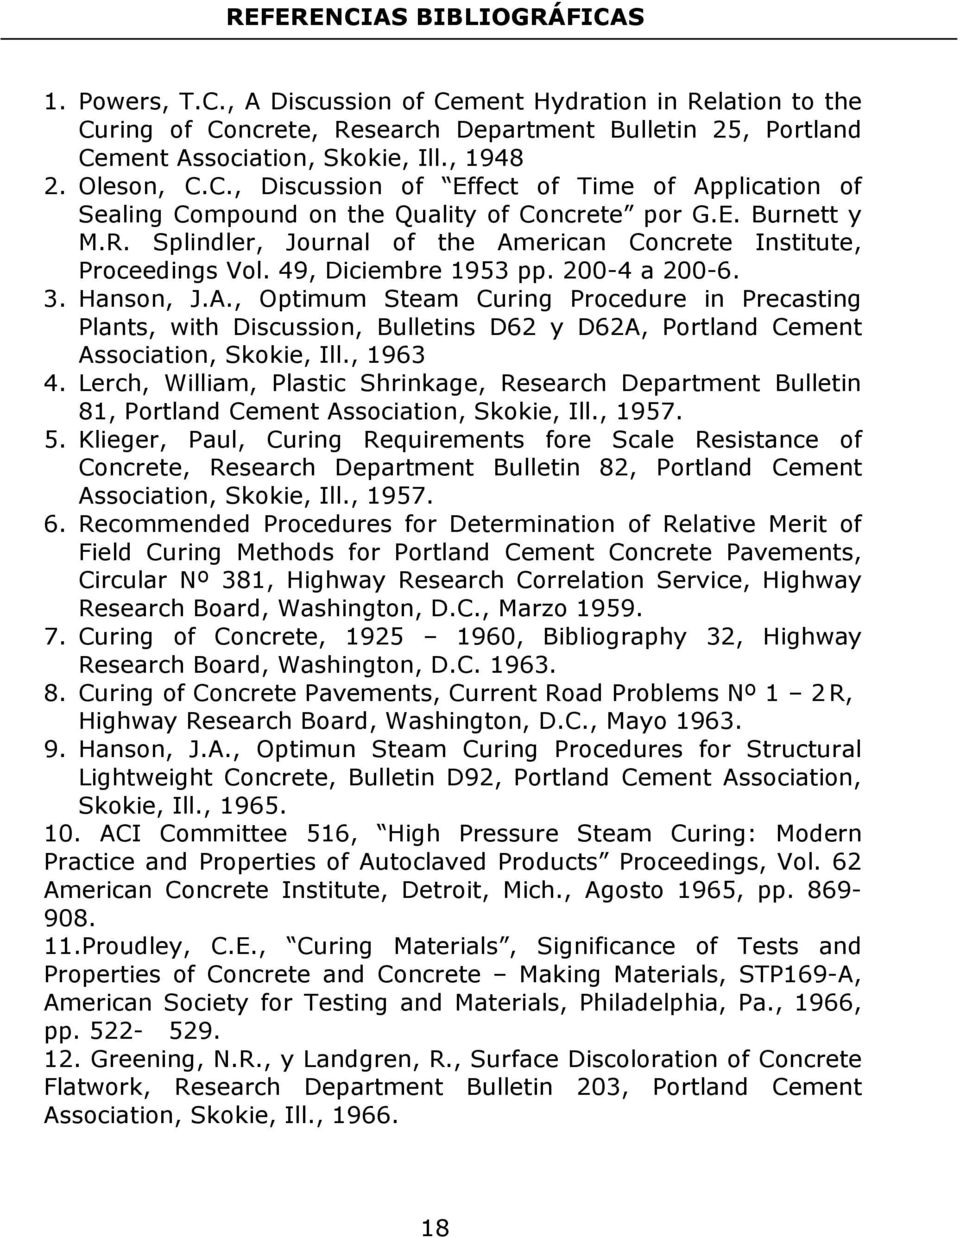 49, Diciembre 1953 pp. 200-4 a 200-6. 3. Hanson, J.A., Optimum Steam Curing Procedure in Precasting Plants, with Discussion, Bulletins D62 y D62A, Portland Cement Association, Skokie, Ill., 1963 4.